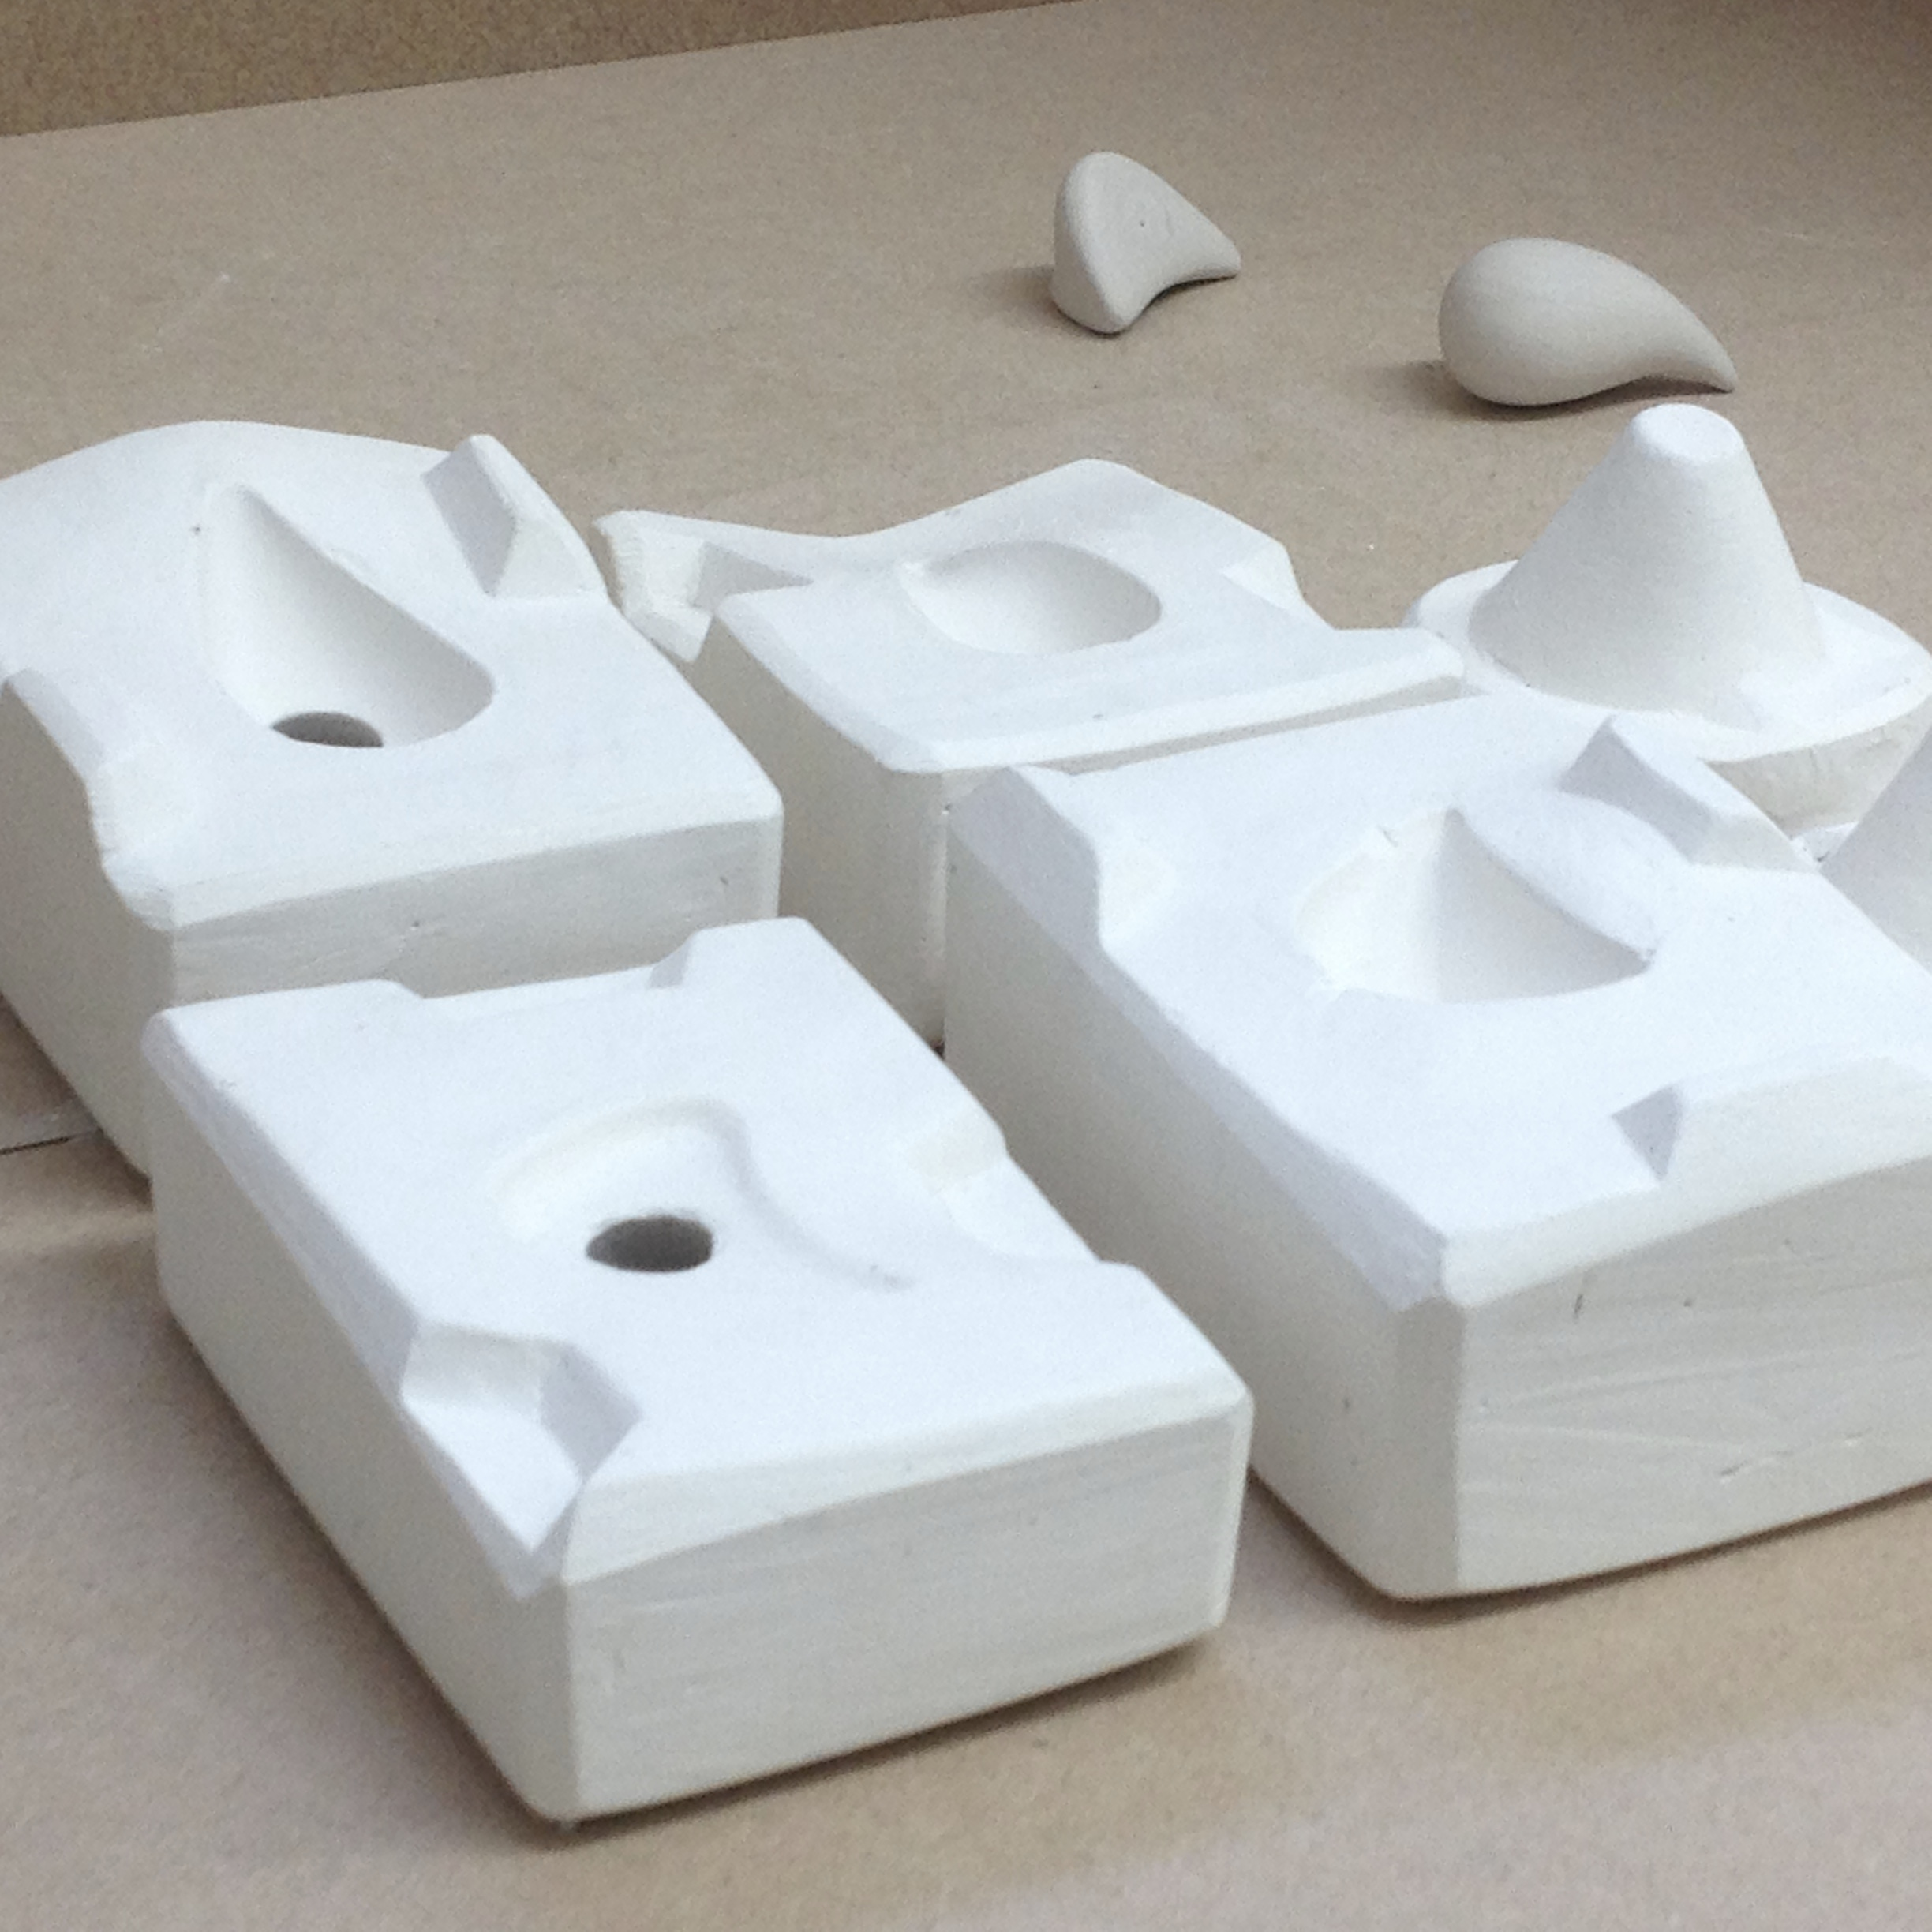 EDWARDS MOULDING AND CASTING